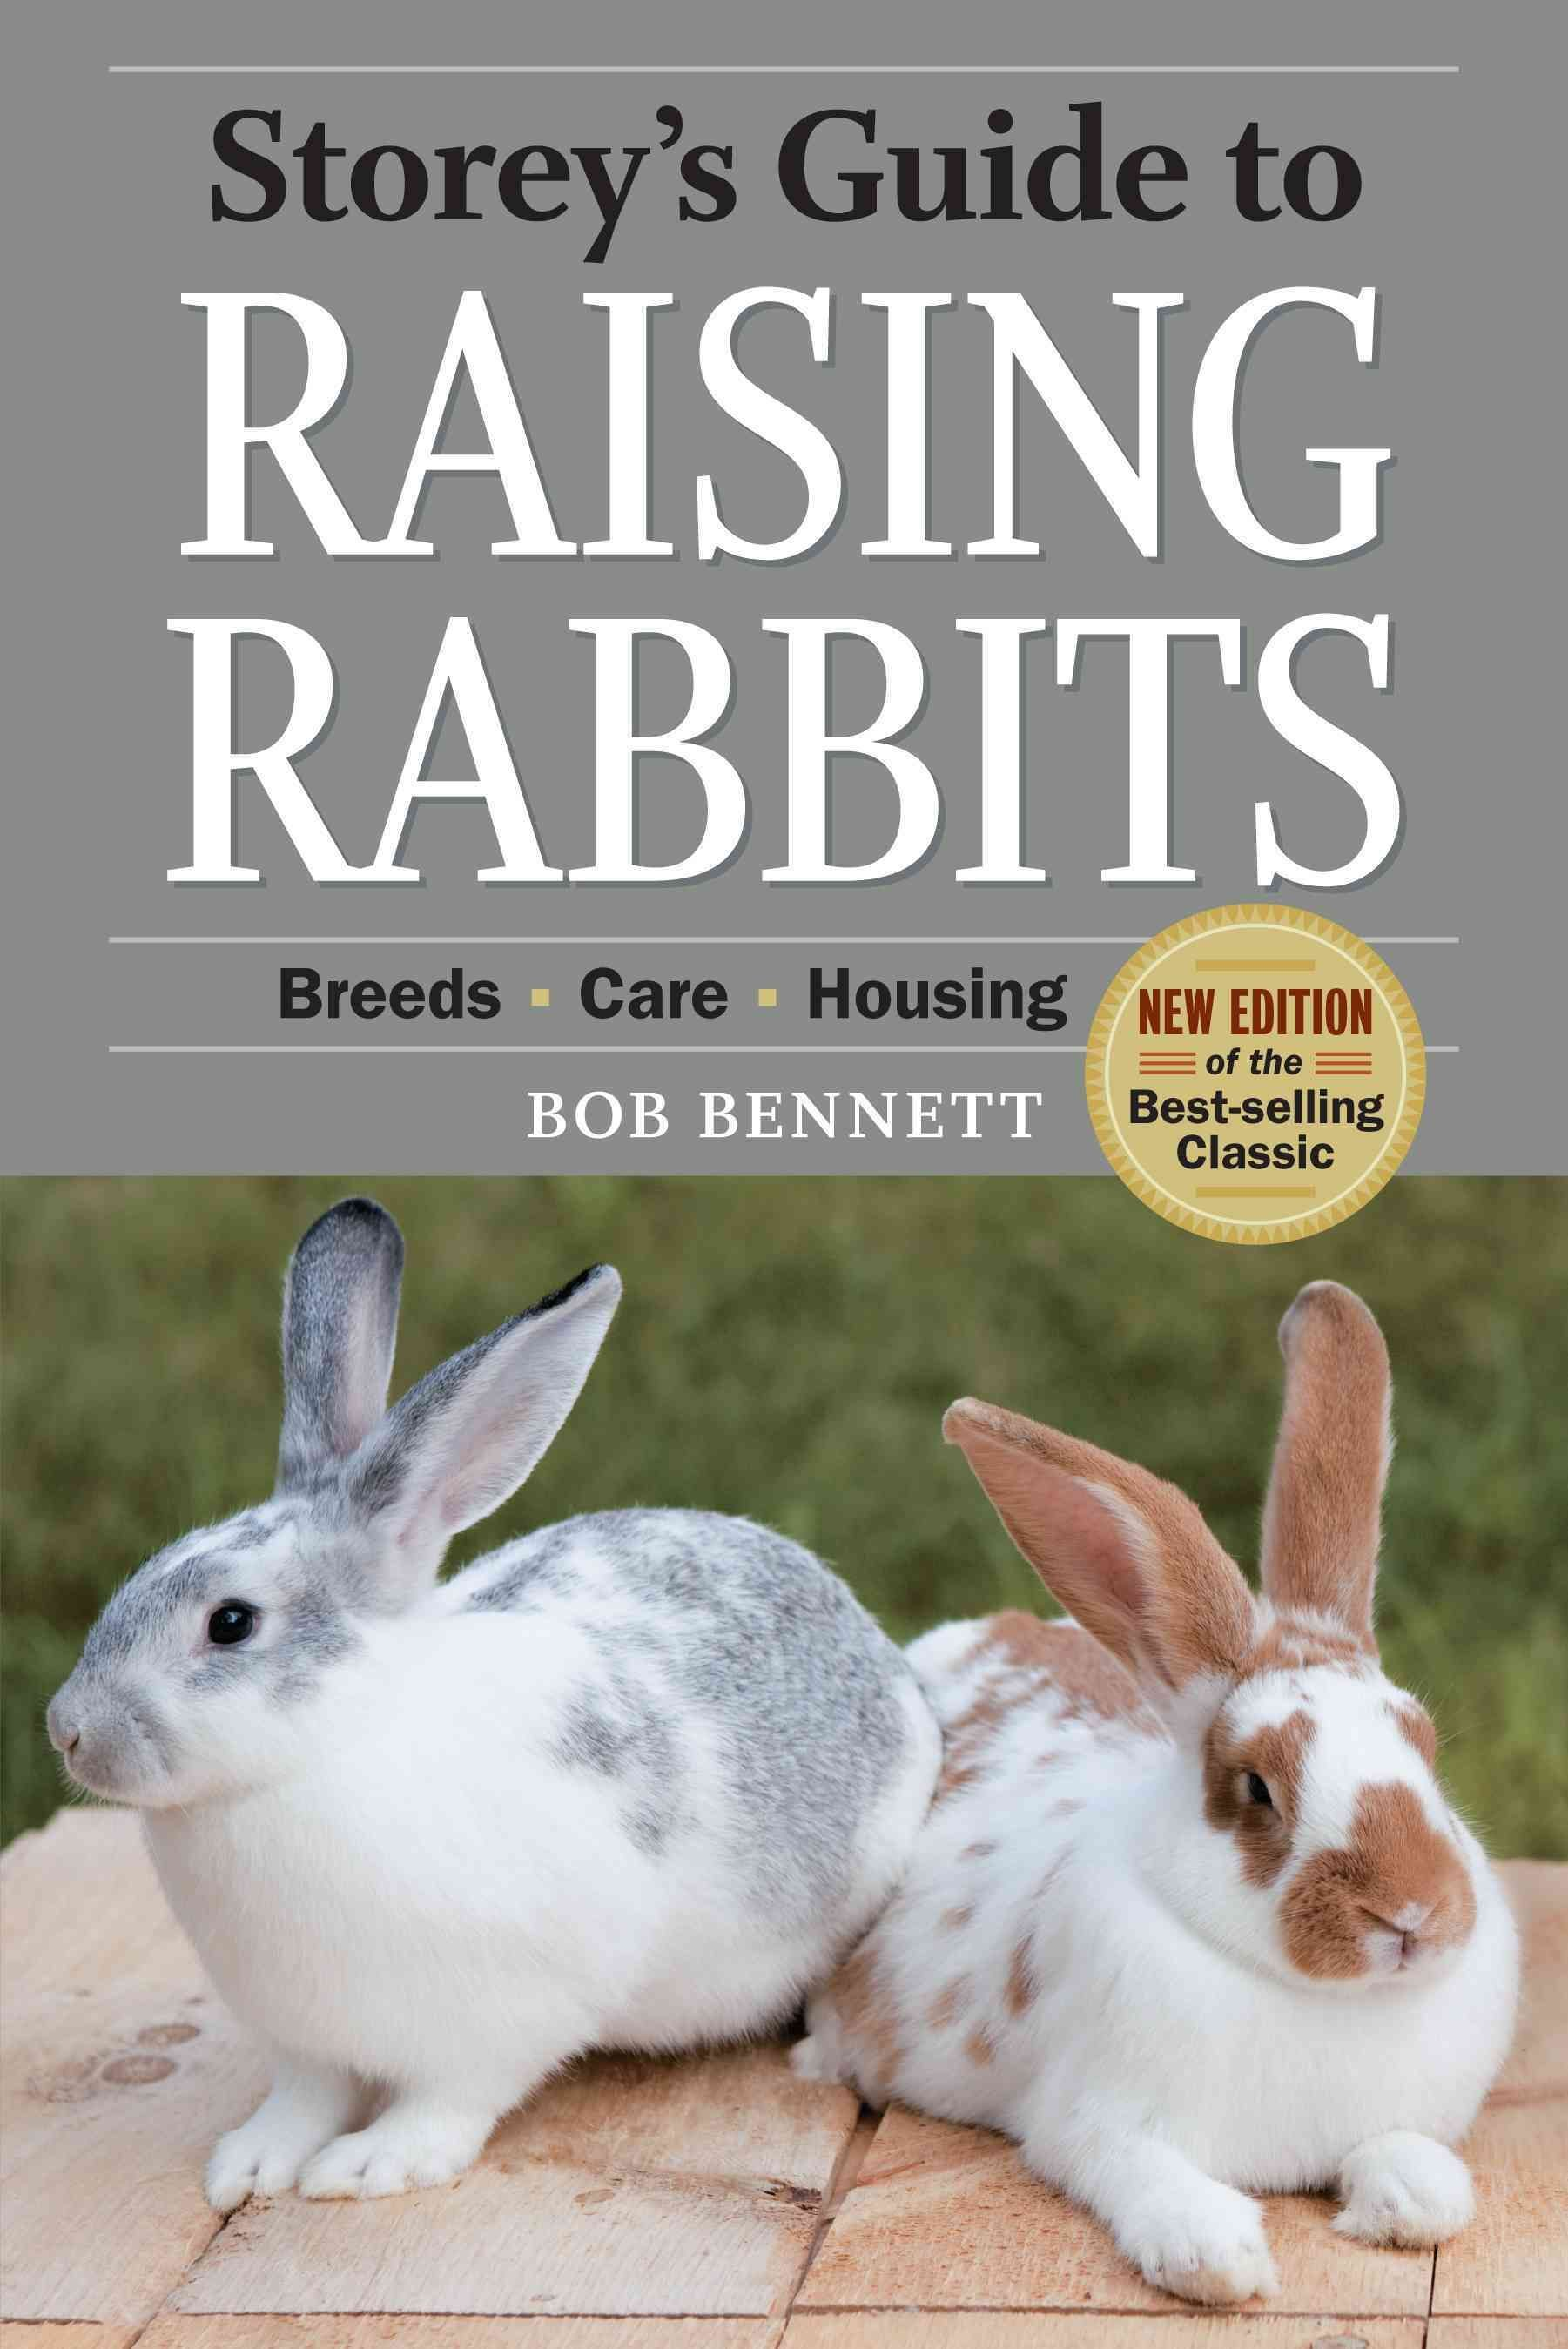 storeys guide to raising rabbits is as essential to the owner of